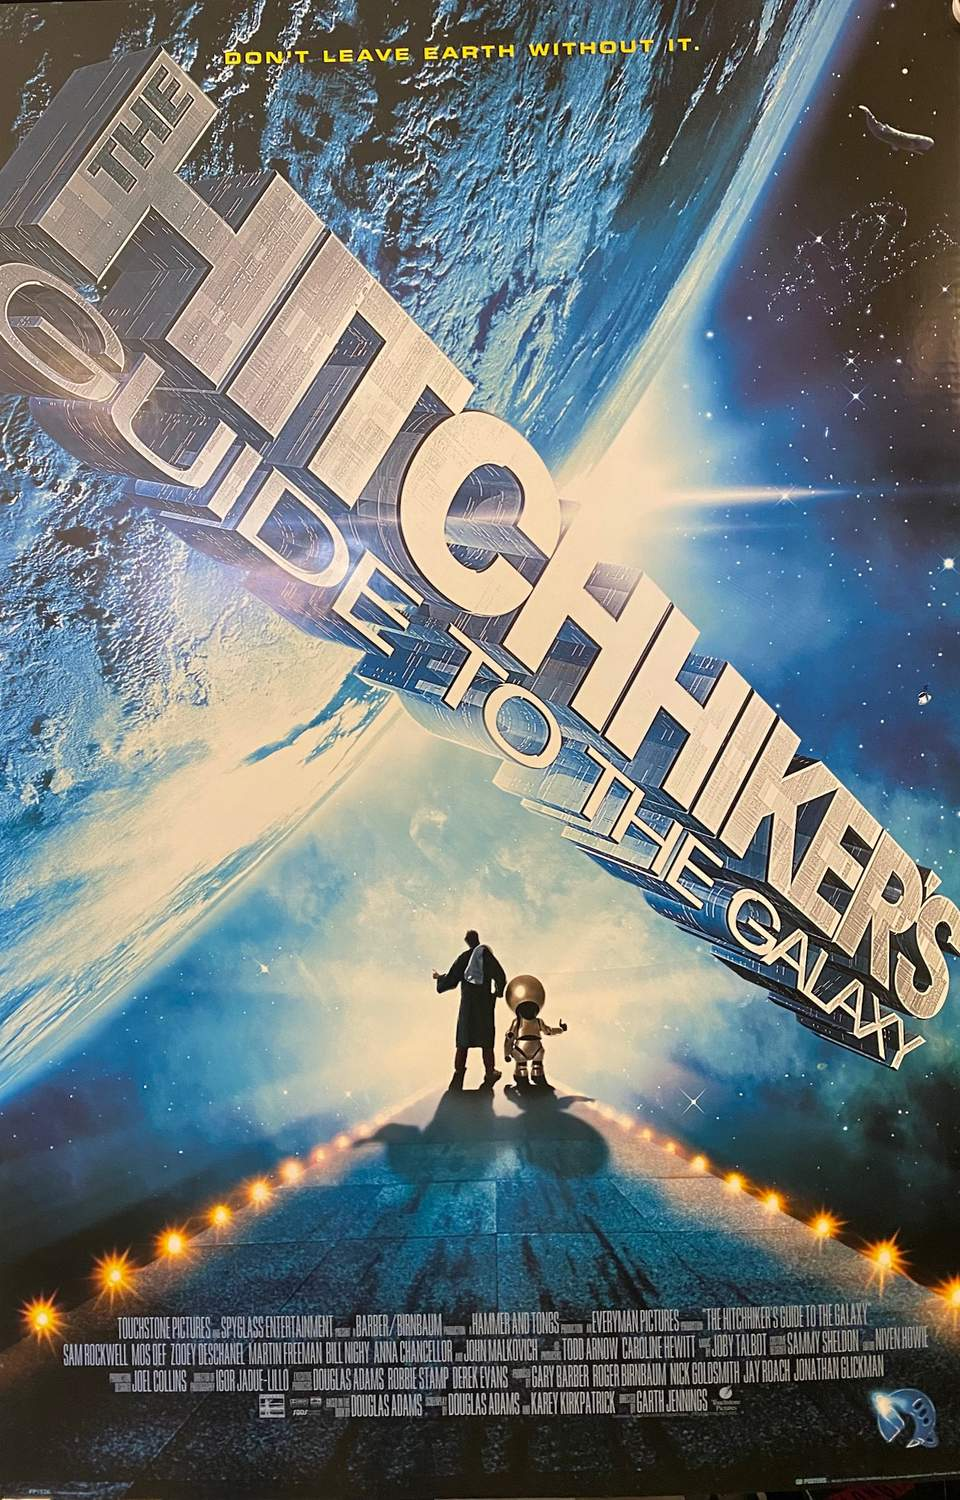 Hitchhikers guide to the galaxy - One Sheet